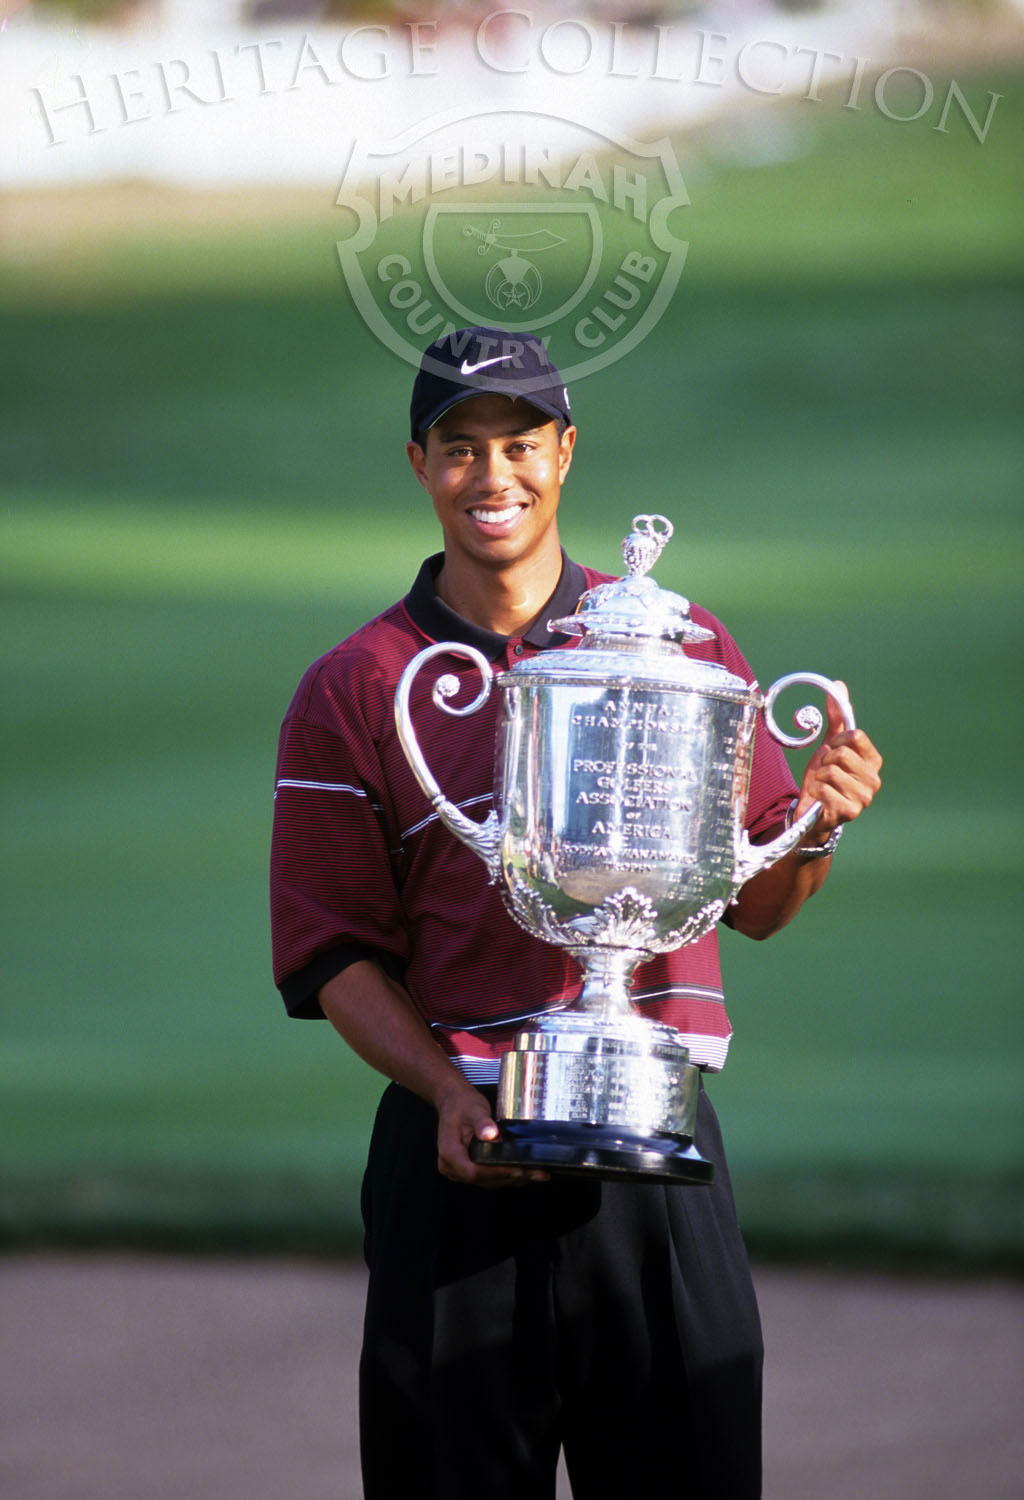 Round 4: Tiger Woods and Trophy: Photographer: Montana Pritchard